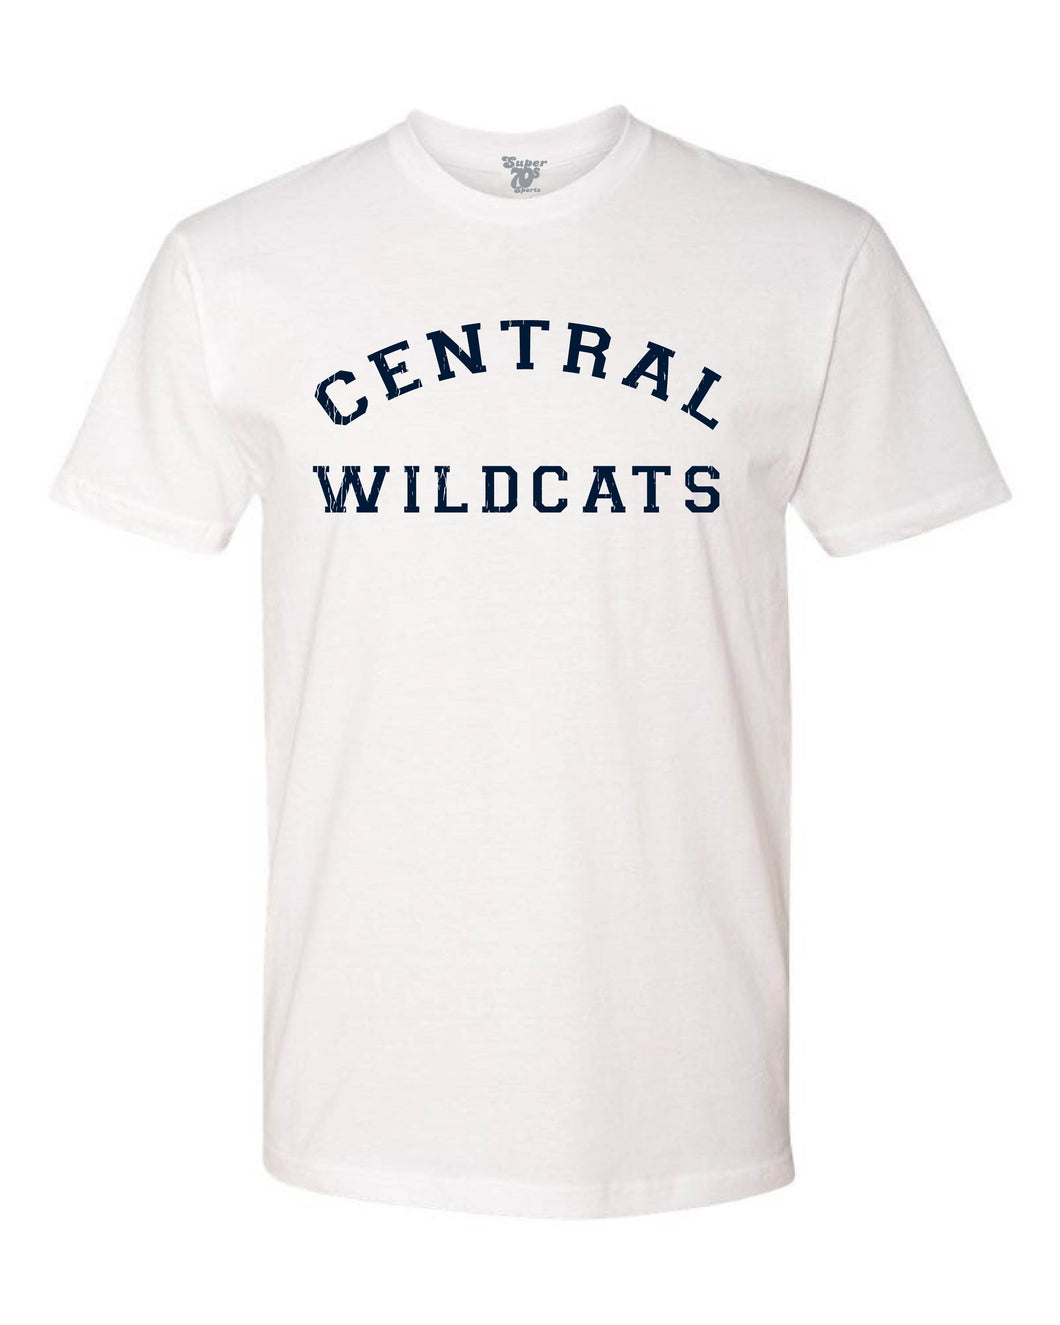 Central Wildcats Tee